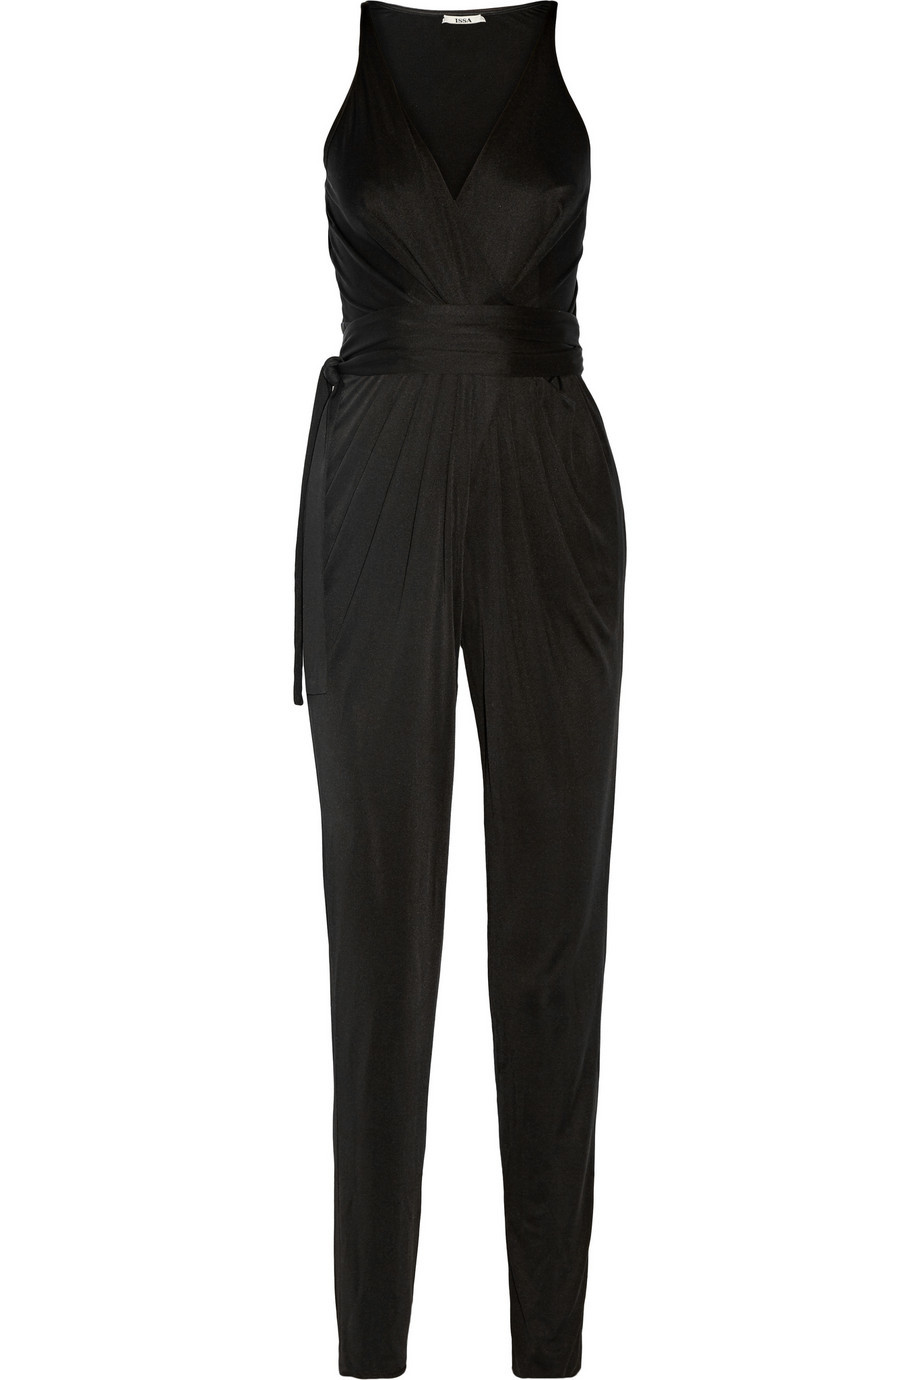 Rubell Wrap Effect Silk Blend Jersey Jumpsuit Black - length: standard; neckline: low v-neck; fit: tailored/fitted; pattern: plain; sleeve style: sleeveless; waist detail: belted waist/tie at waist/drawstring; predominant colour: black; occasions: evening, occasion; fibres: silk - mix; hip detail: ruching/gathering at hip; sleeve length: sleeveless; style: jumpsuit; pattern type: fabric; texture group: jersey - stretchy/drapey; season: s/s 2016